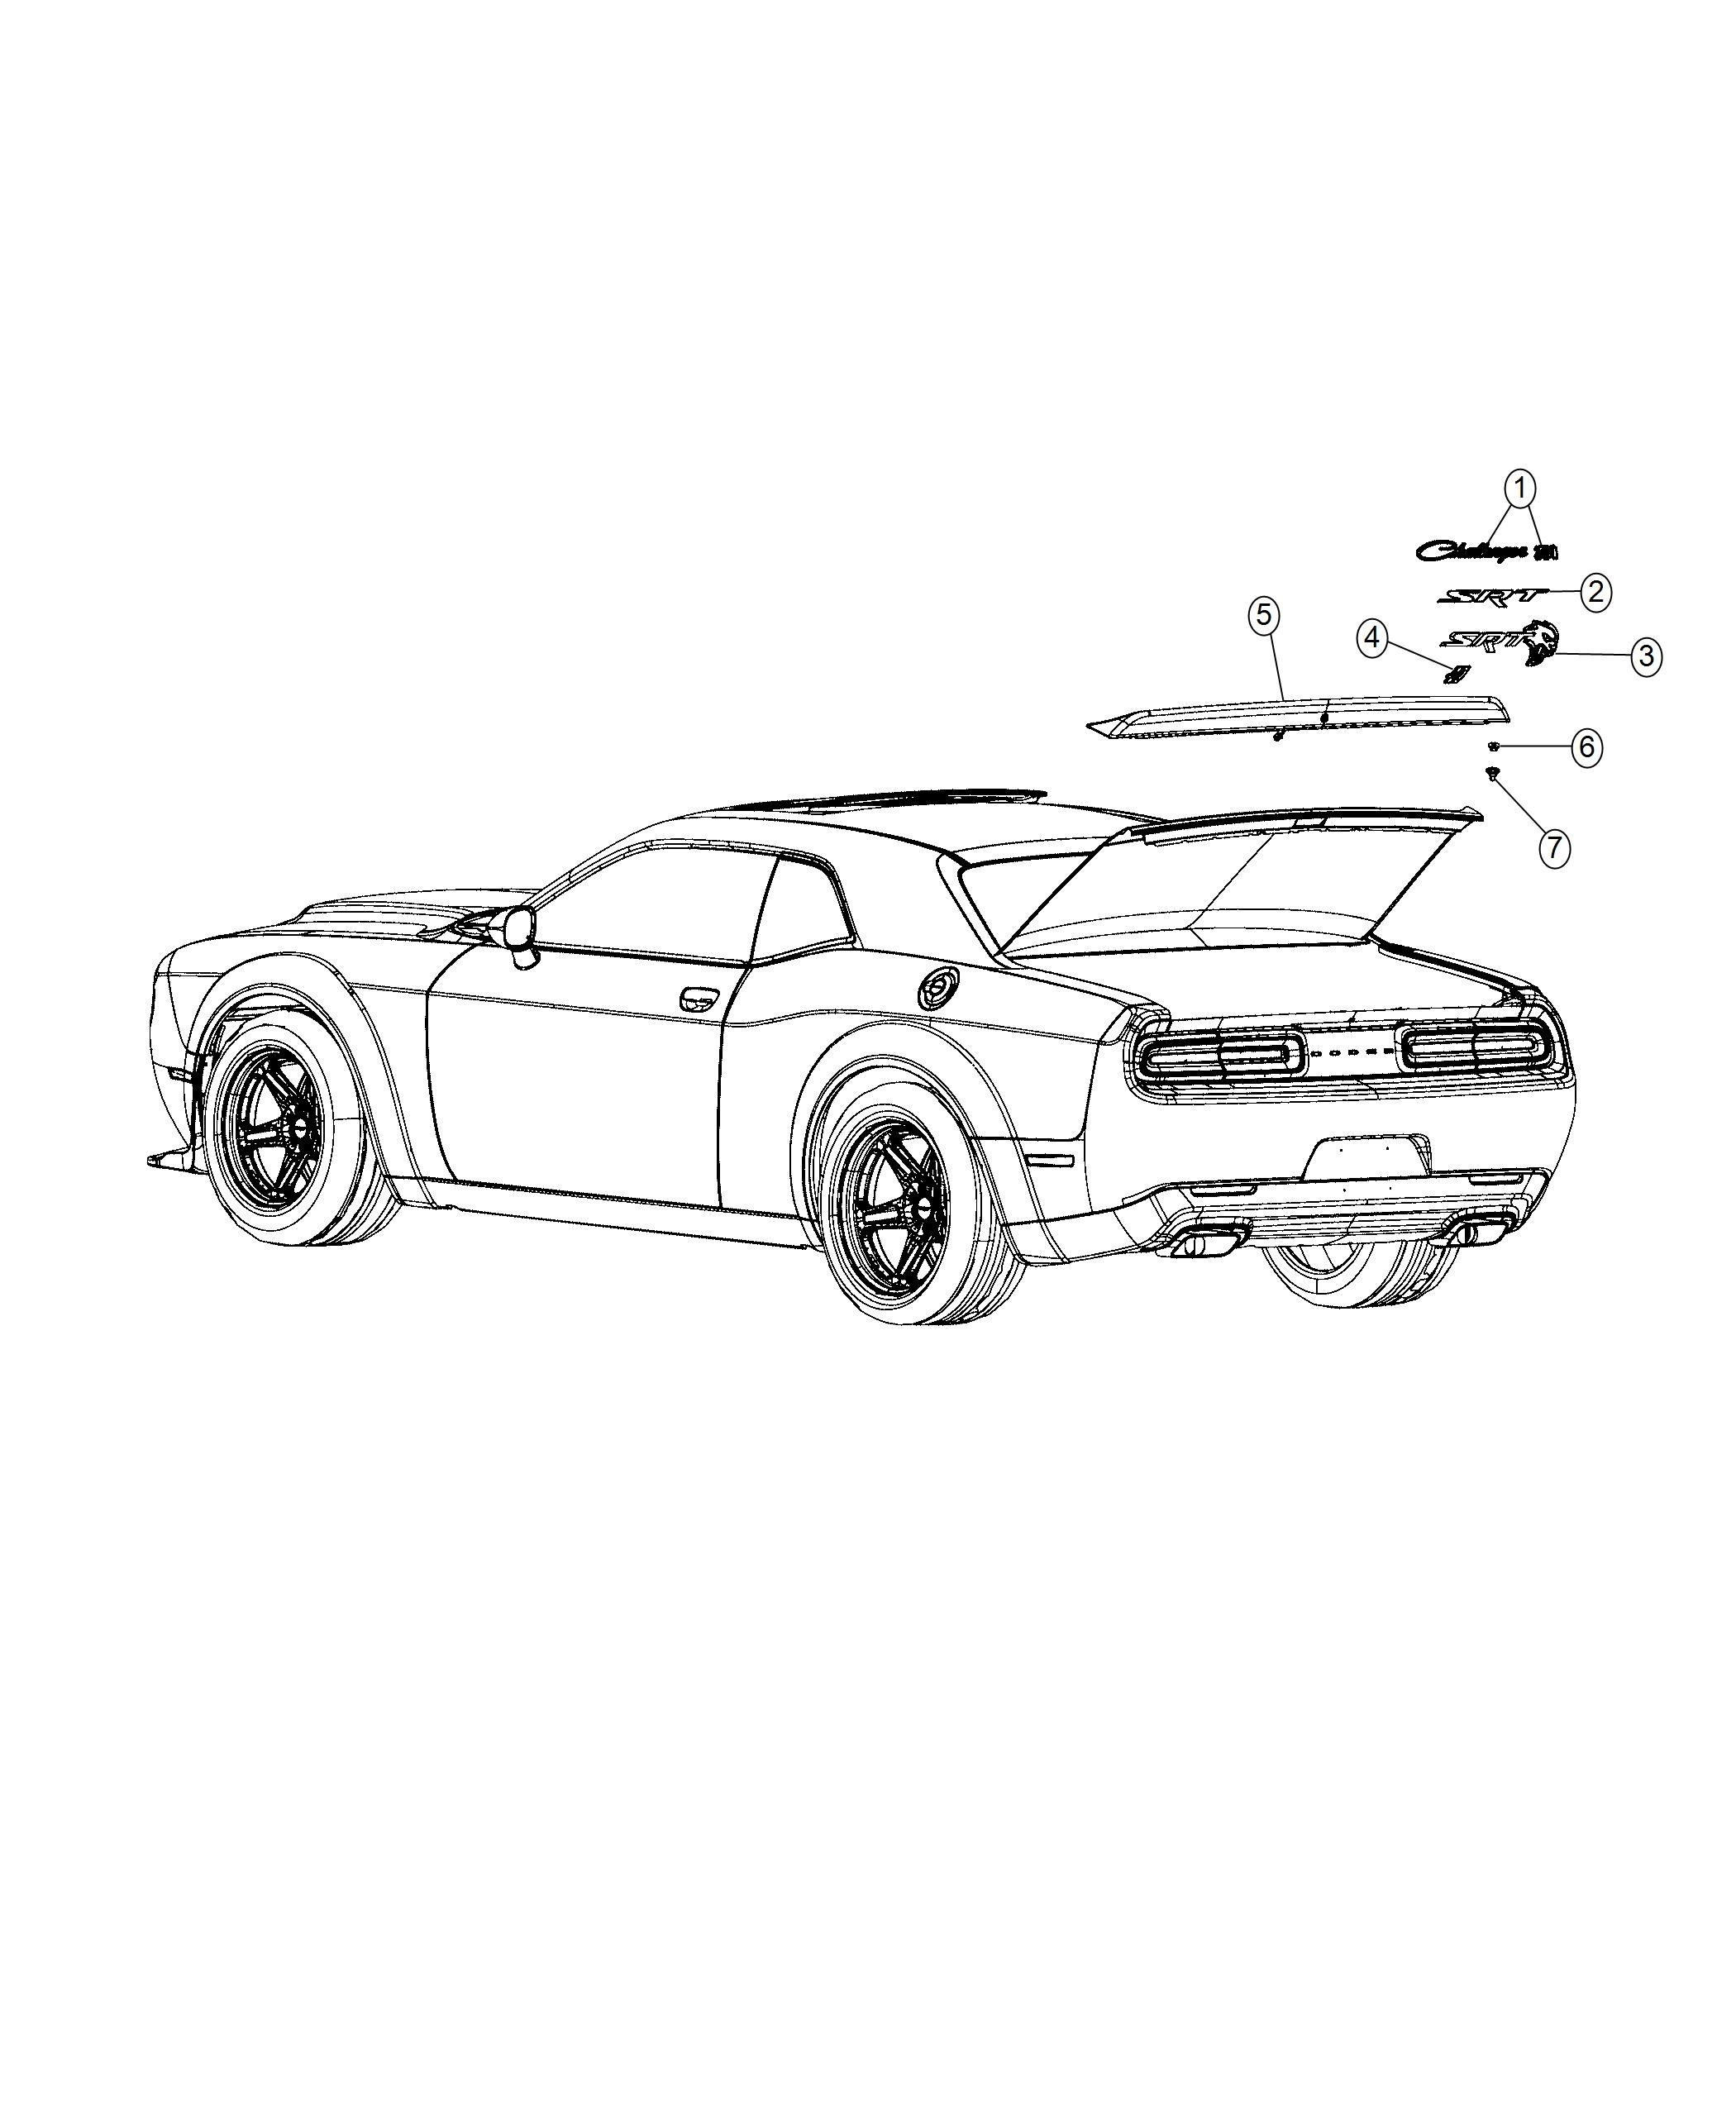 classic dodge challenger hellcat wiring diagram database dodge challenger plate srt hellcat satin black rear